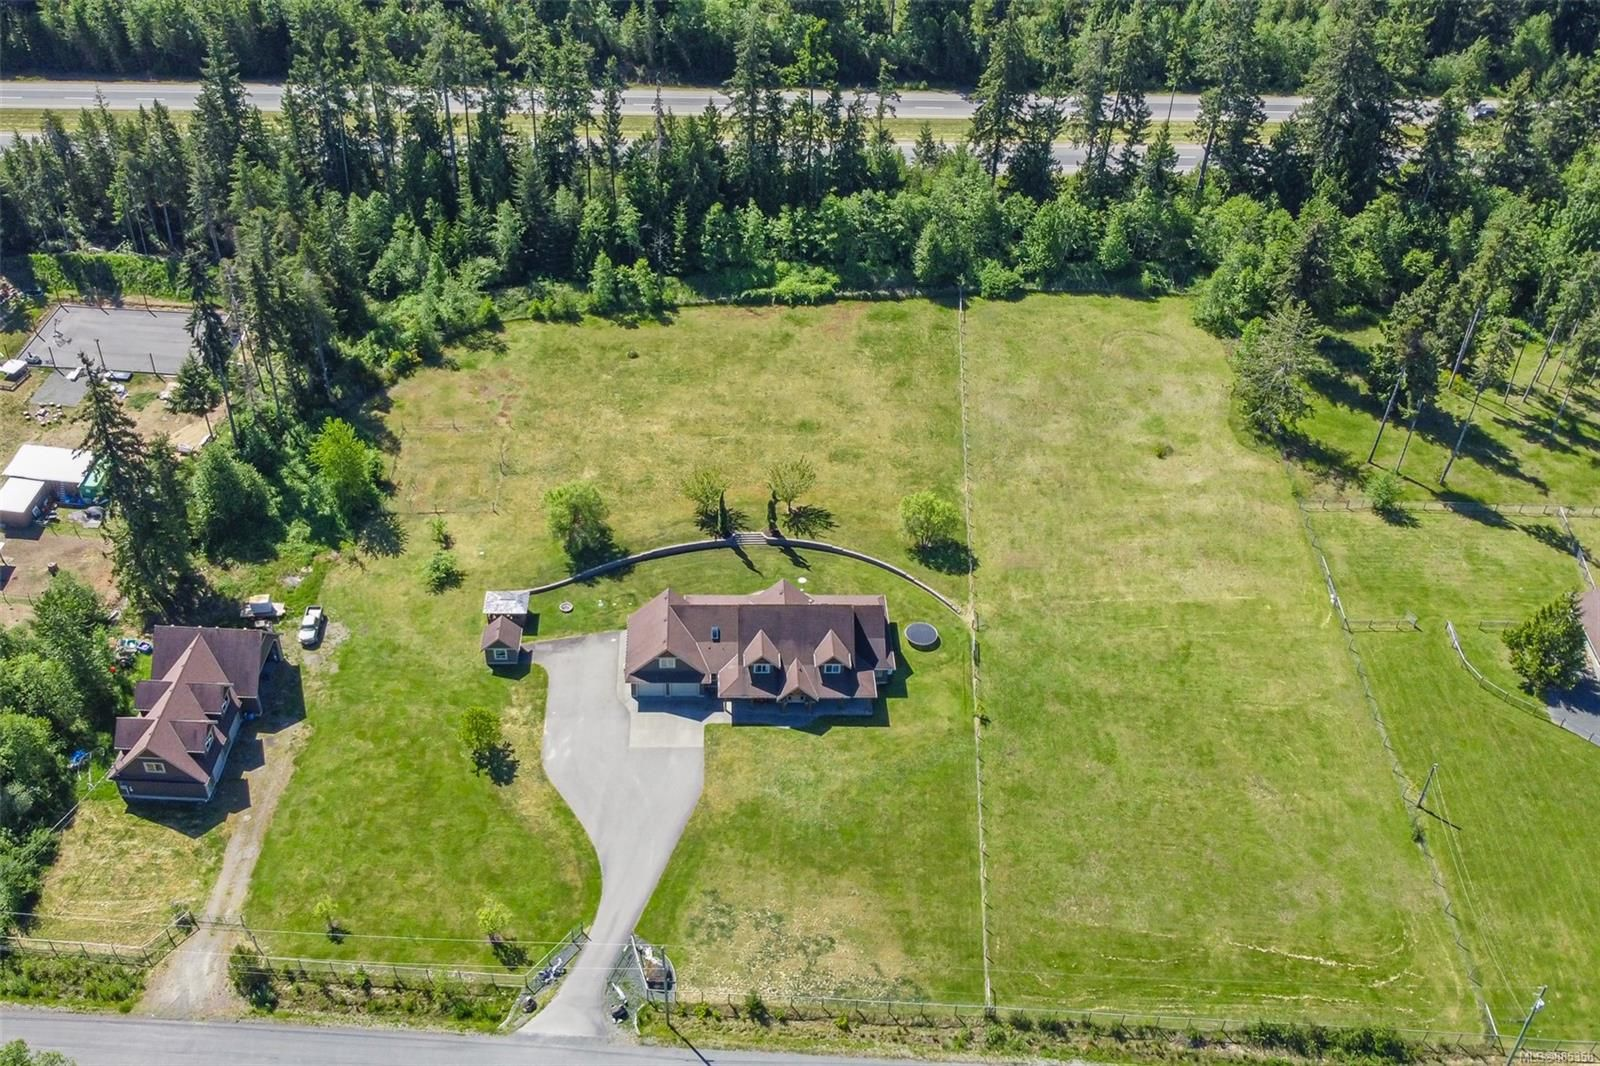 Photo 71: Photos: 2850 Peters Rd in : PQ Qualicum Beach House for sale (Parksville/Qualicum)  : MLS®# 885358